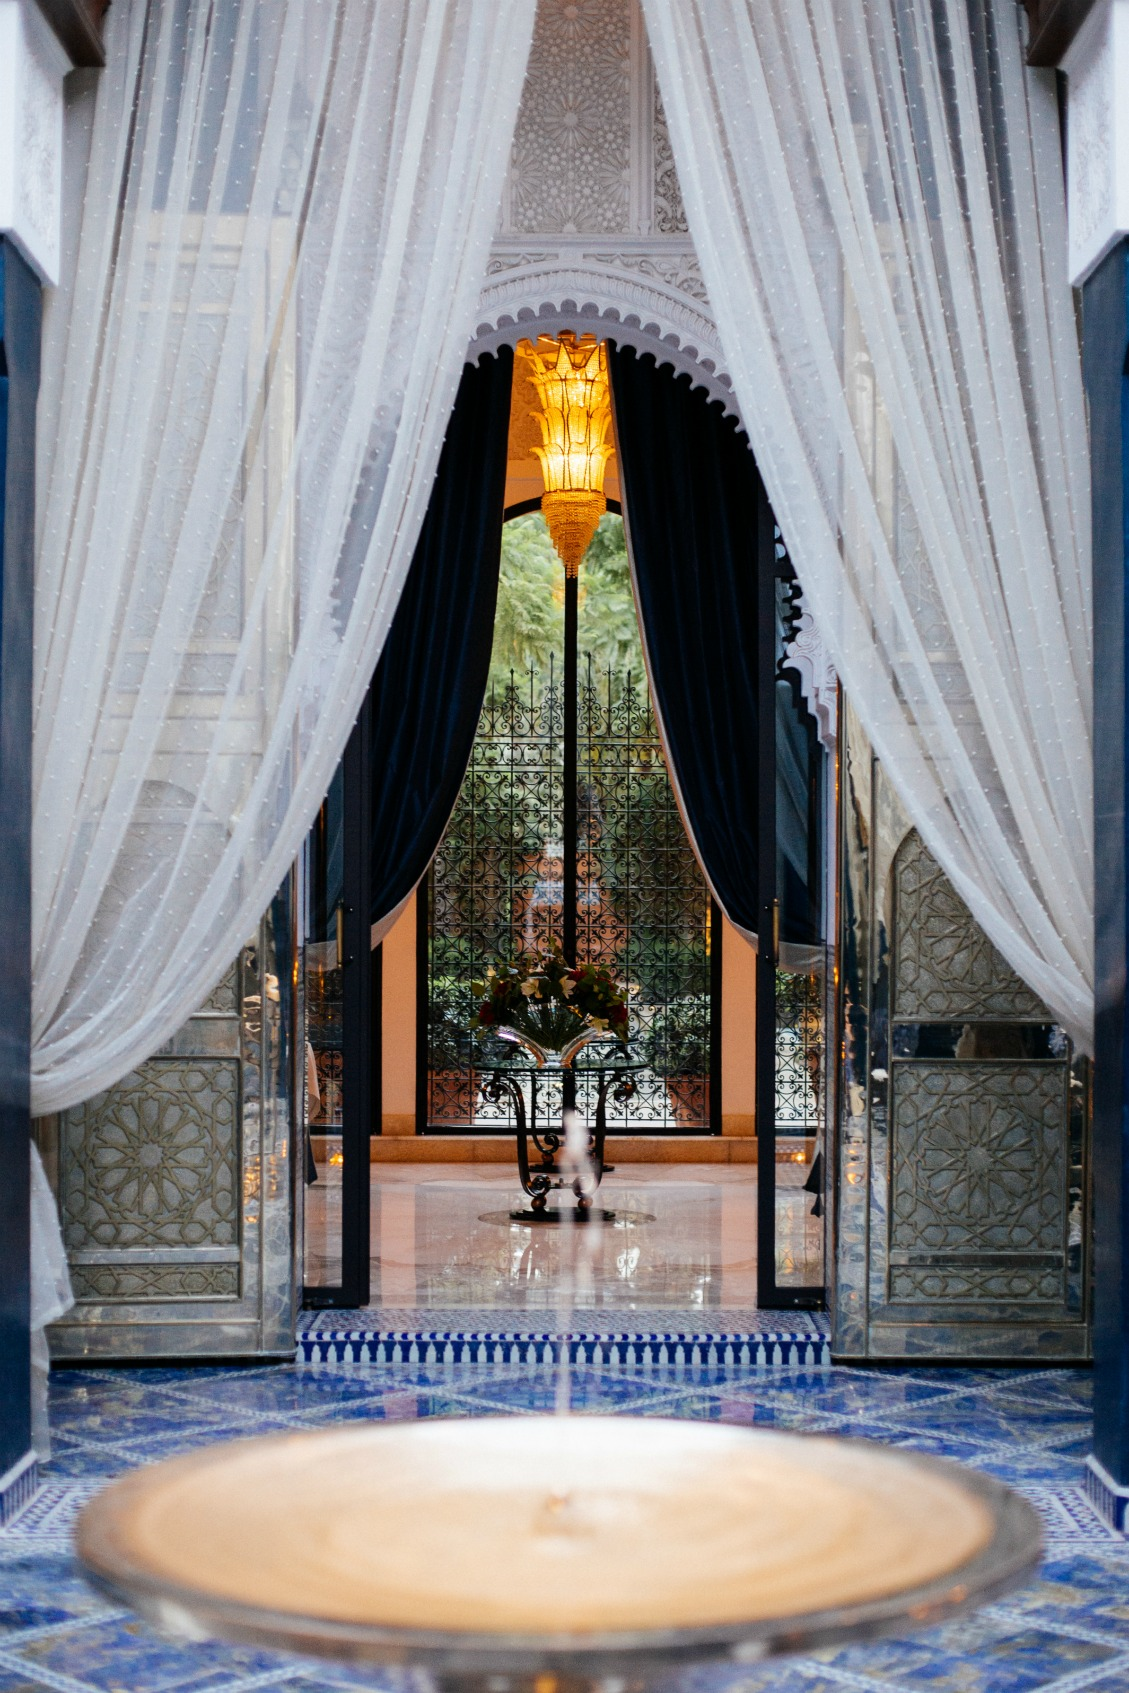 royal-mansour-hotel-luxury-marrakesch-marrakesh-morocco-edisa-shahini-disicouture-blog-51